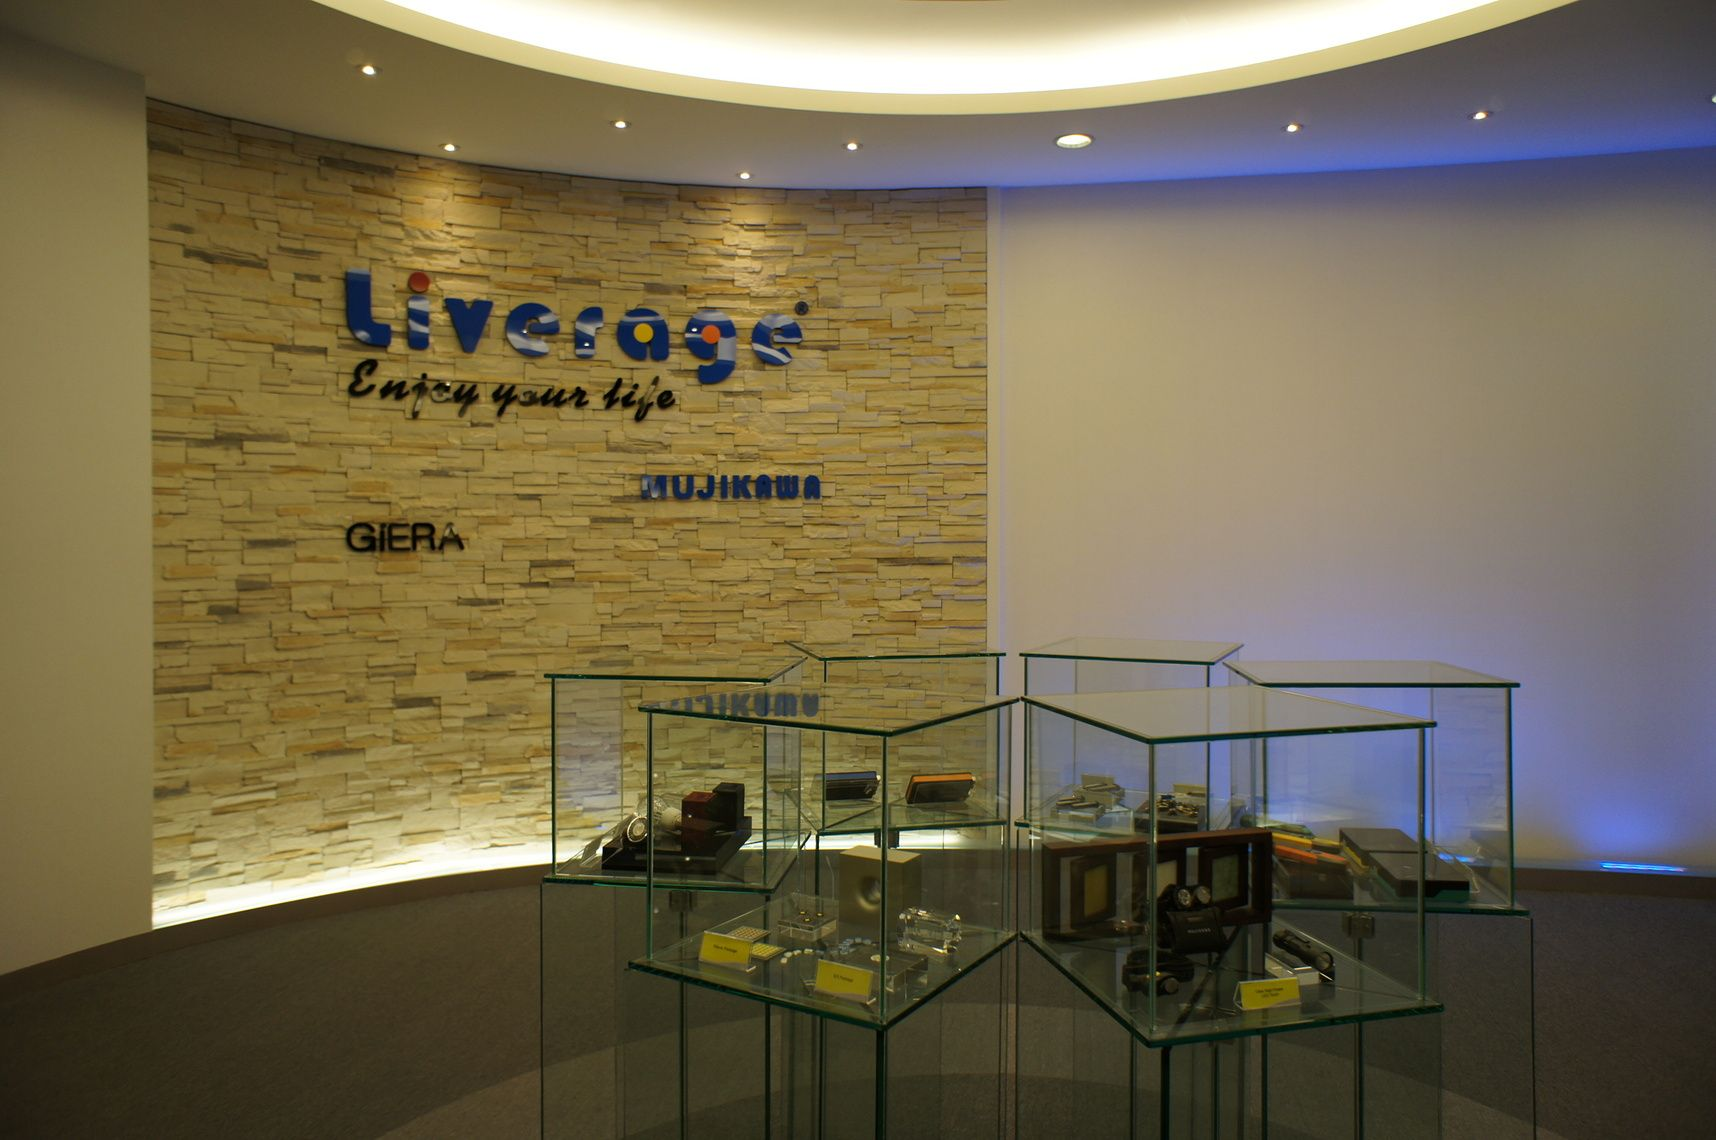 Liverage Technology Inc. has dedicated in fiber optics communication industry for more than 15 years.